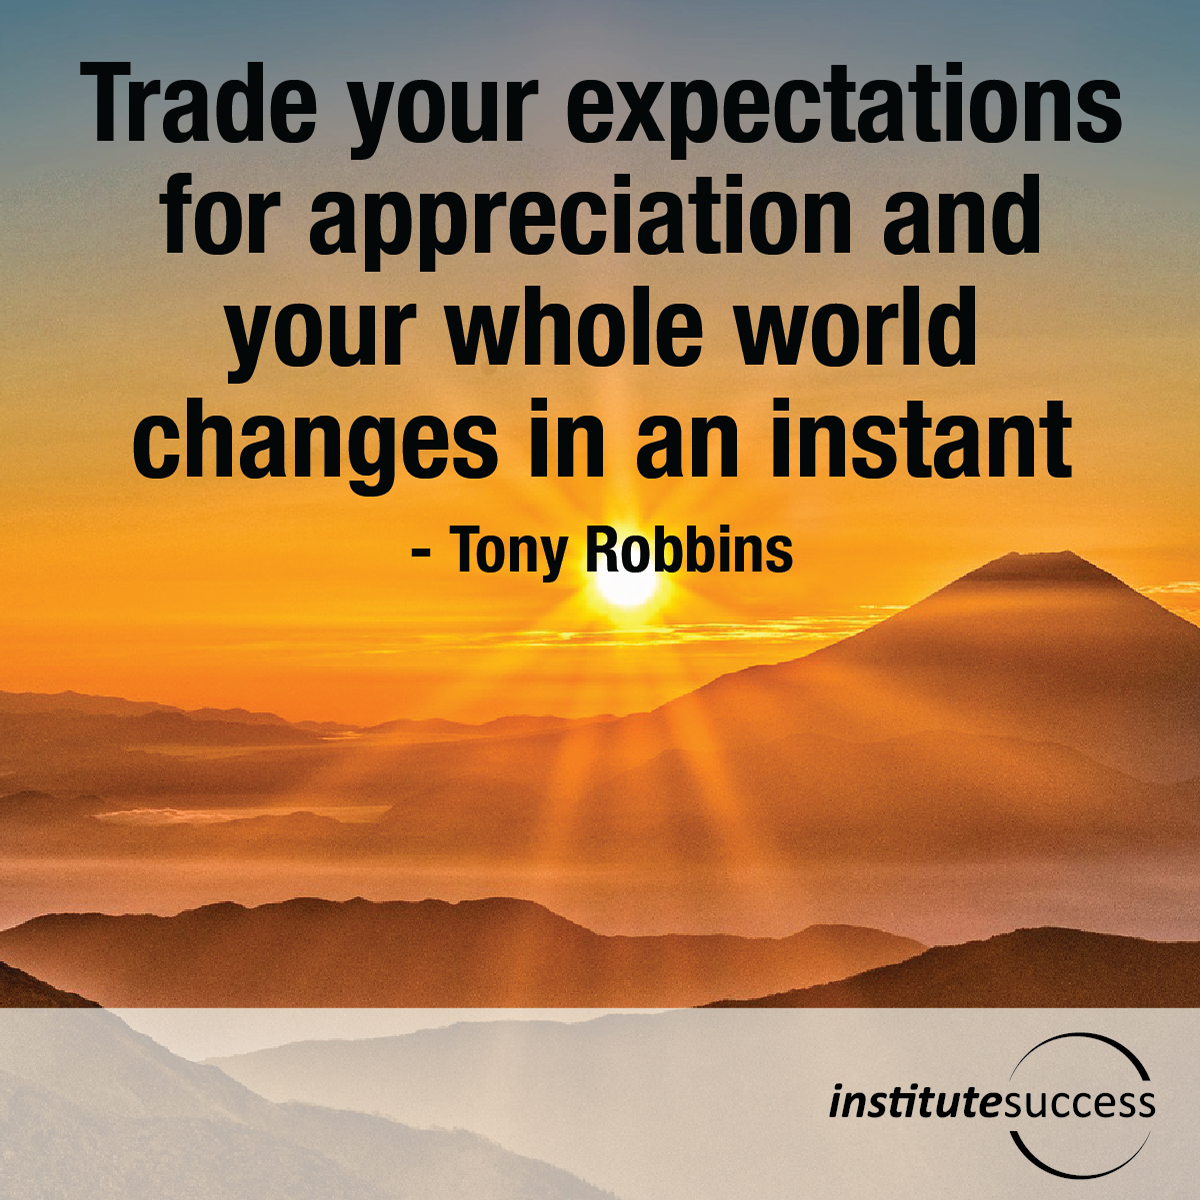 Trade your expectations for appreciation and your whole world changes in an instant – Tony Robbins